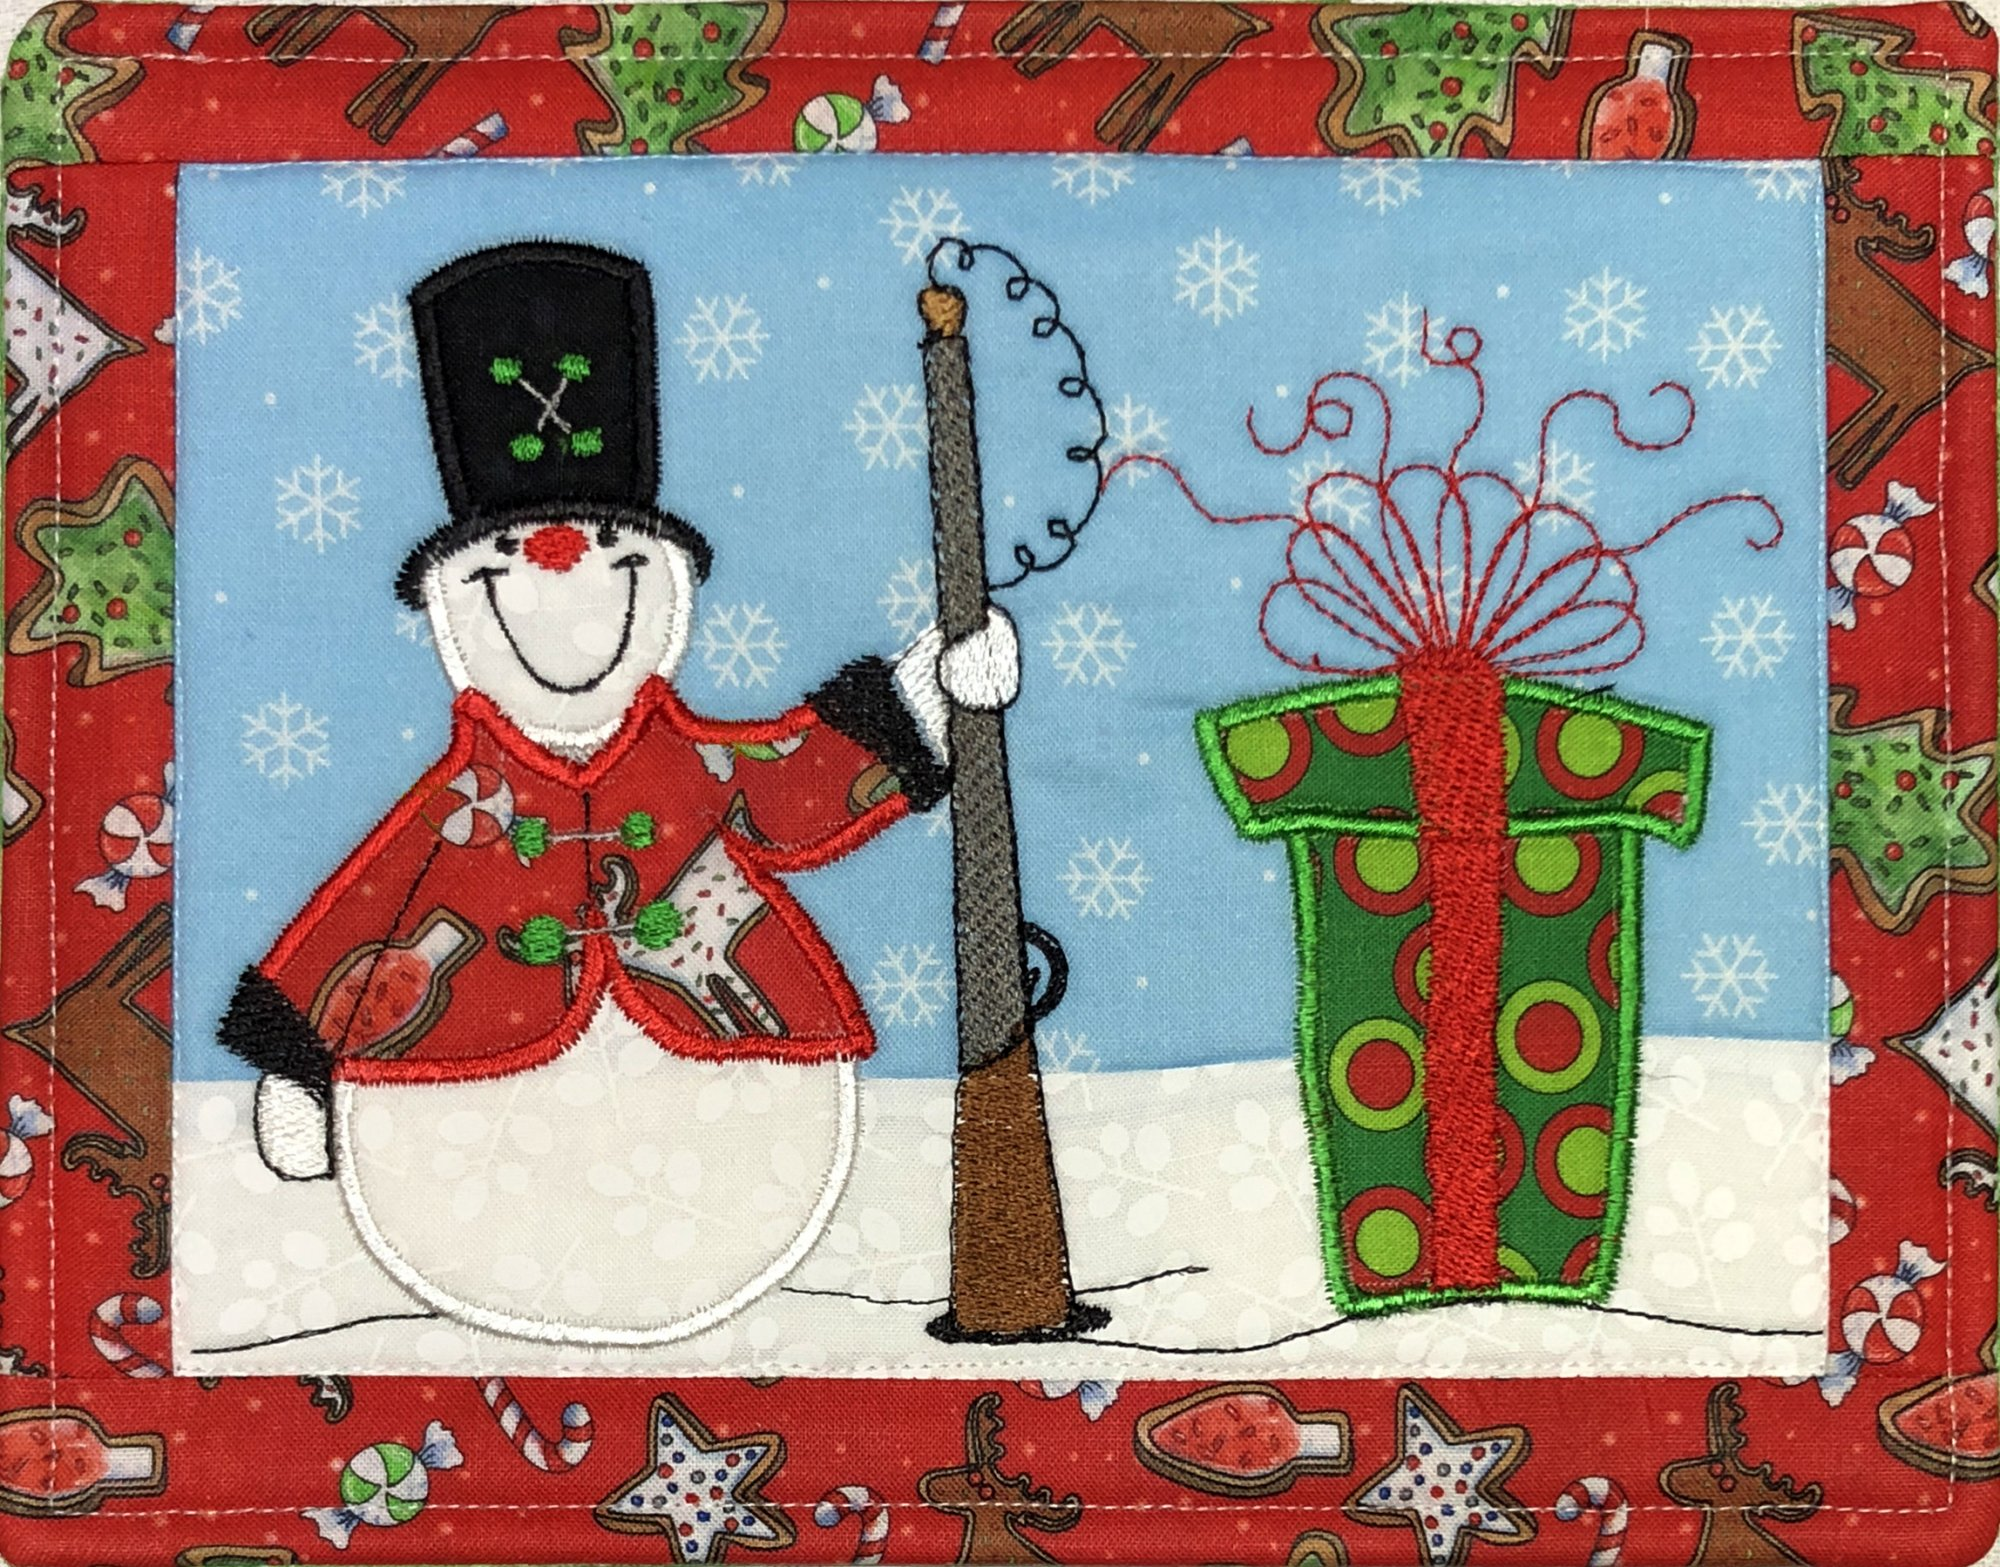 Santa's Snowman Sentry #1 ITH Mug Rug Embroidery CD- (MR-105-DDE-K) Kit